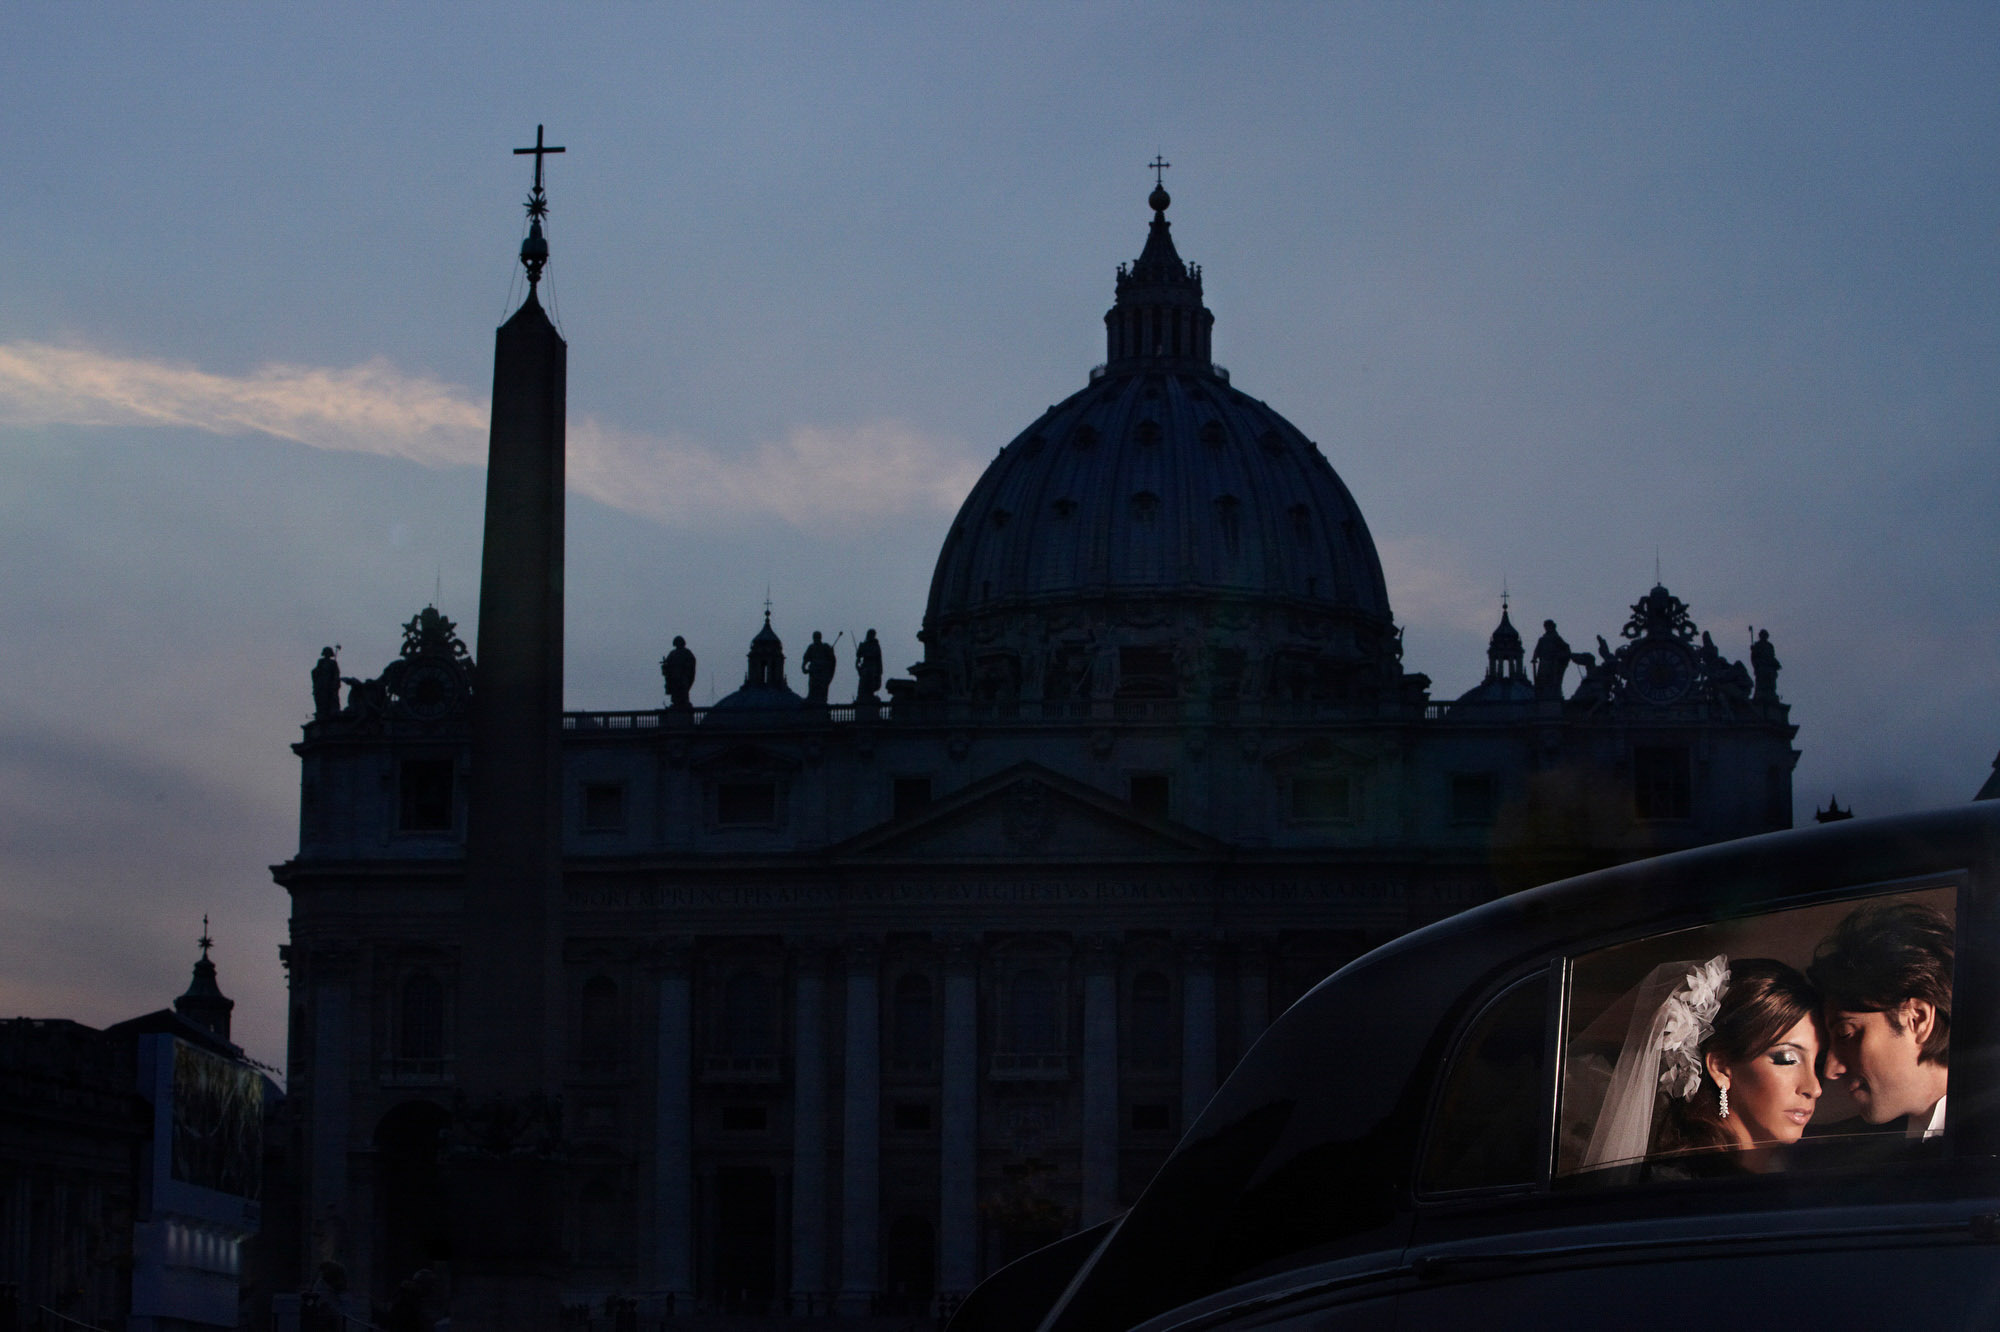 Couple in limousine with St. Paul's Cathedral in background - photo by Jerry Ghionis